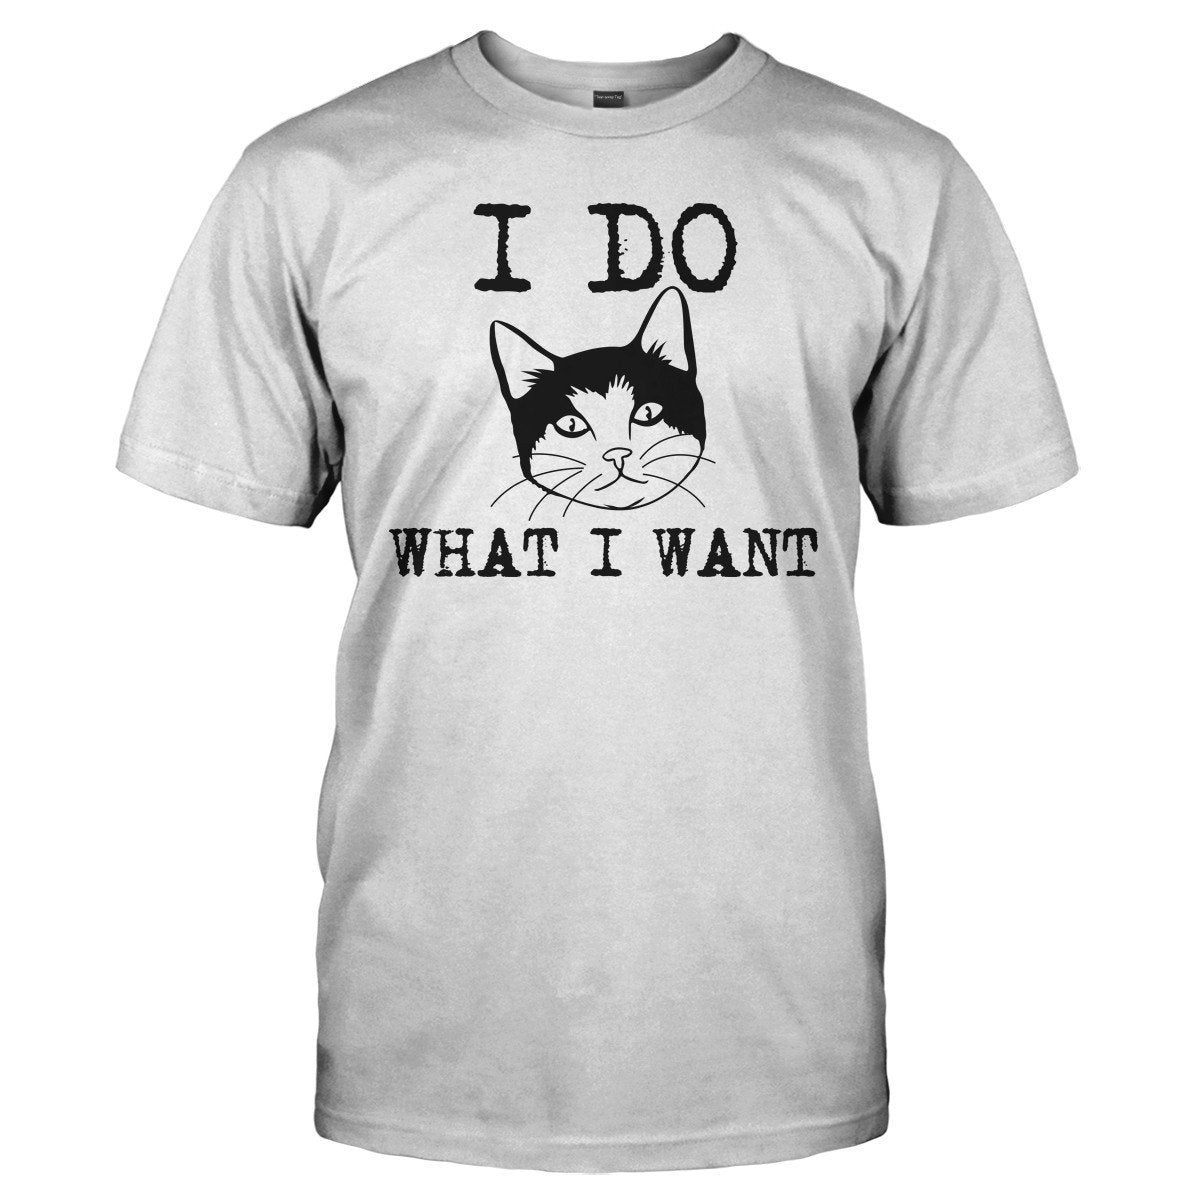 I Do What I Want - T Shirt